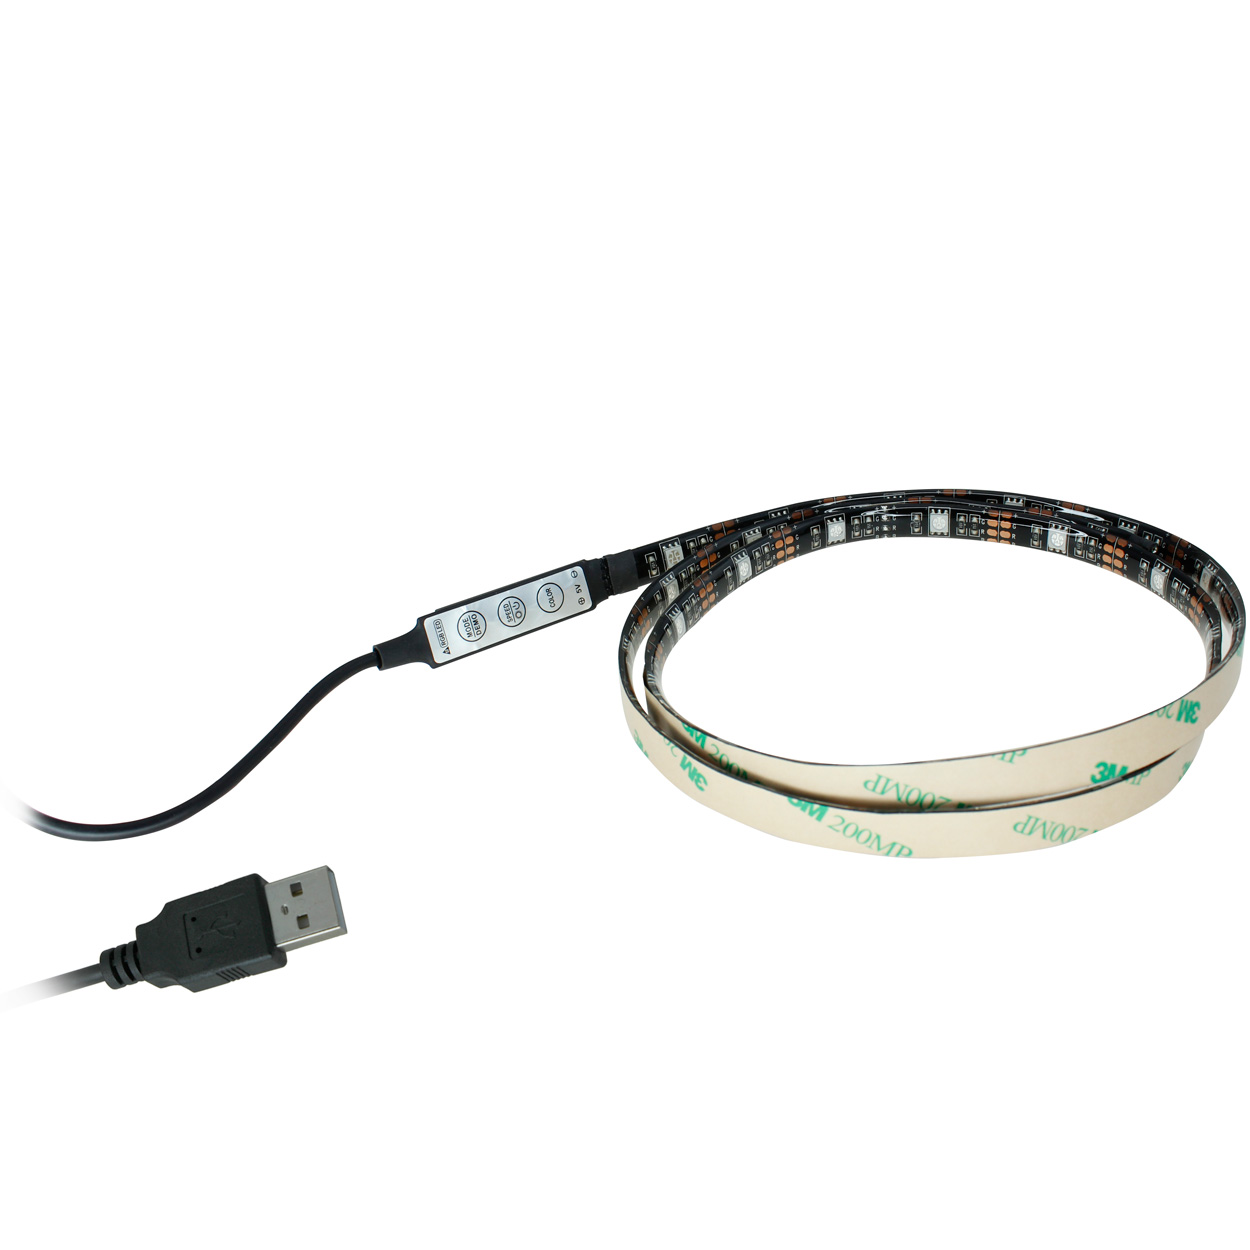 3.3ft RGB LED Light Strip, 30 Units SMD 5050 LEDs with 5V USB Power Cable, Waterproof IP65